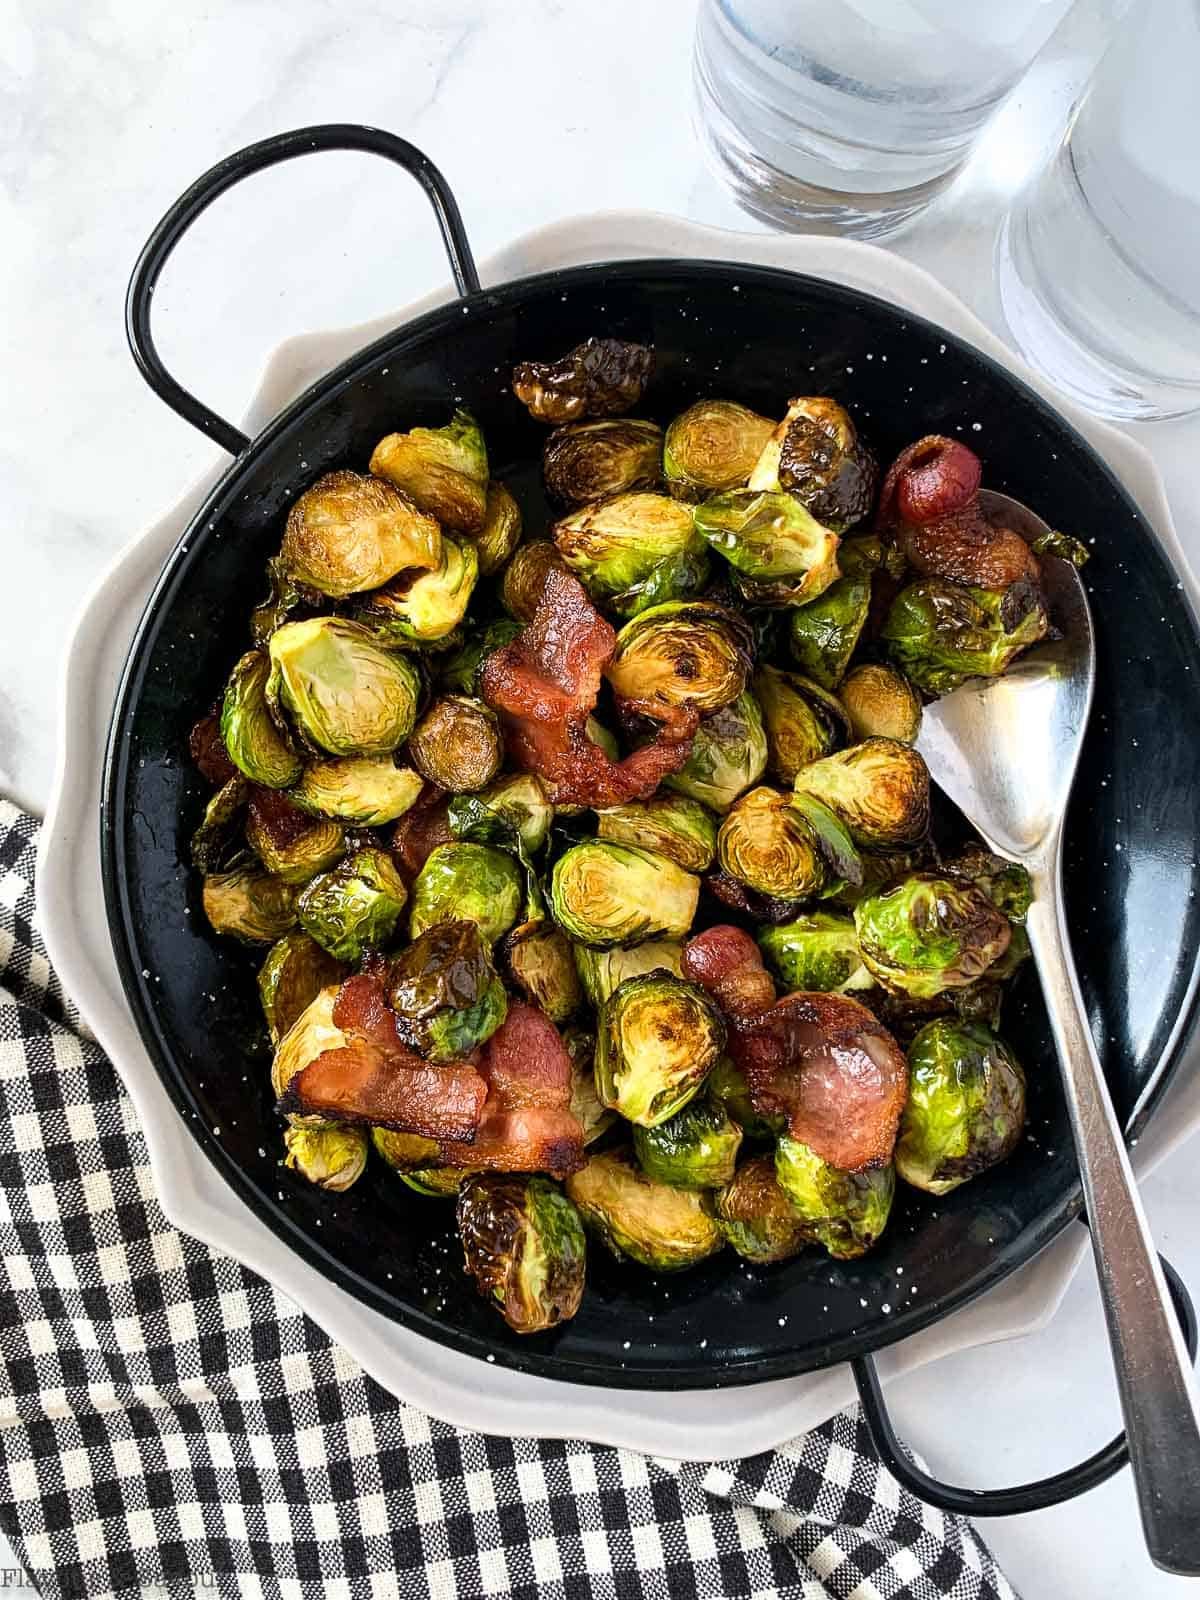 Overhead view of Balsamic Brussels Sprouts with bacon pieces in a black serving dish